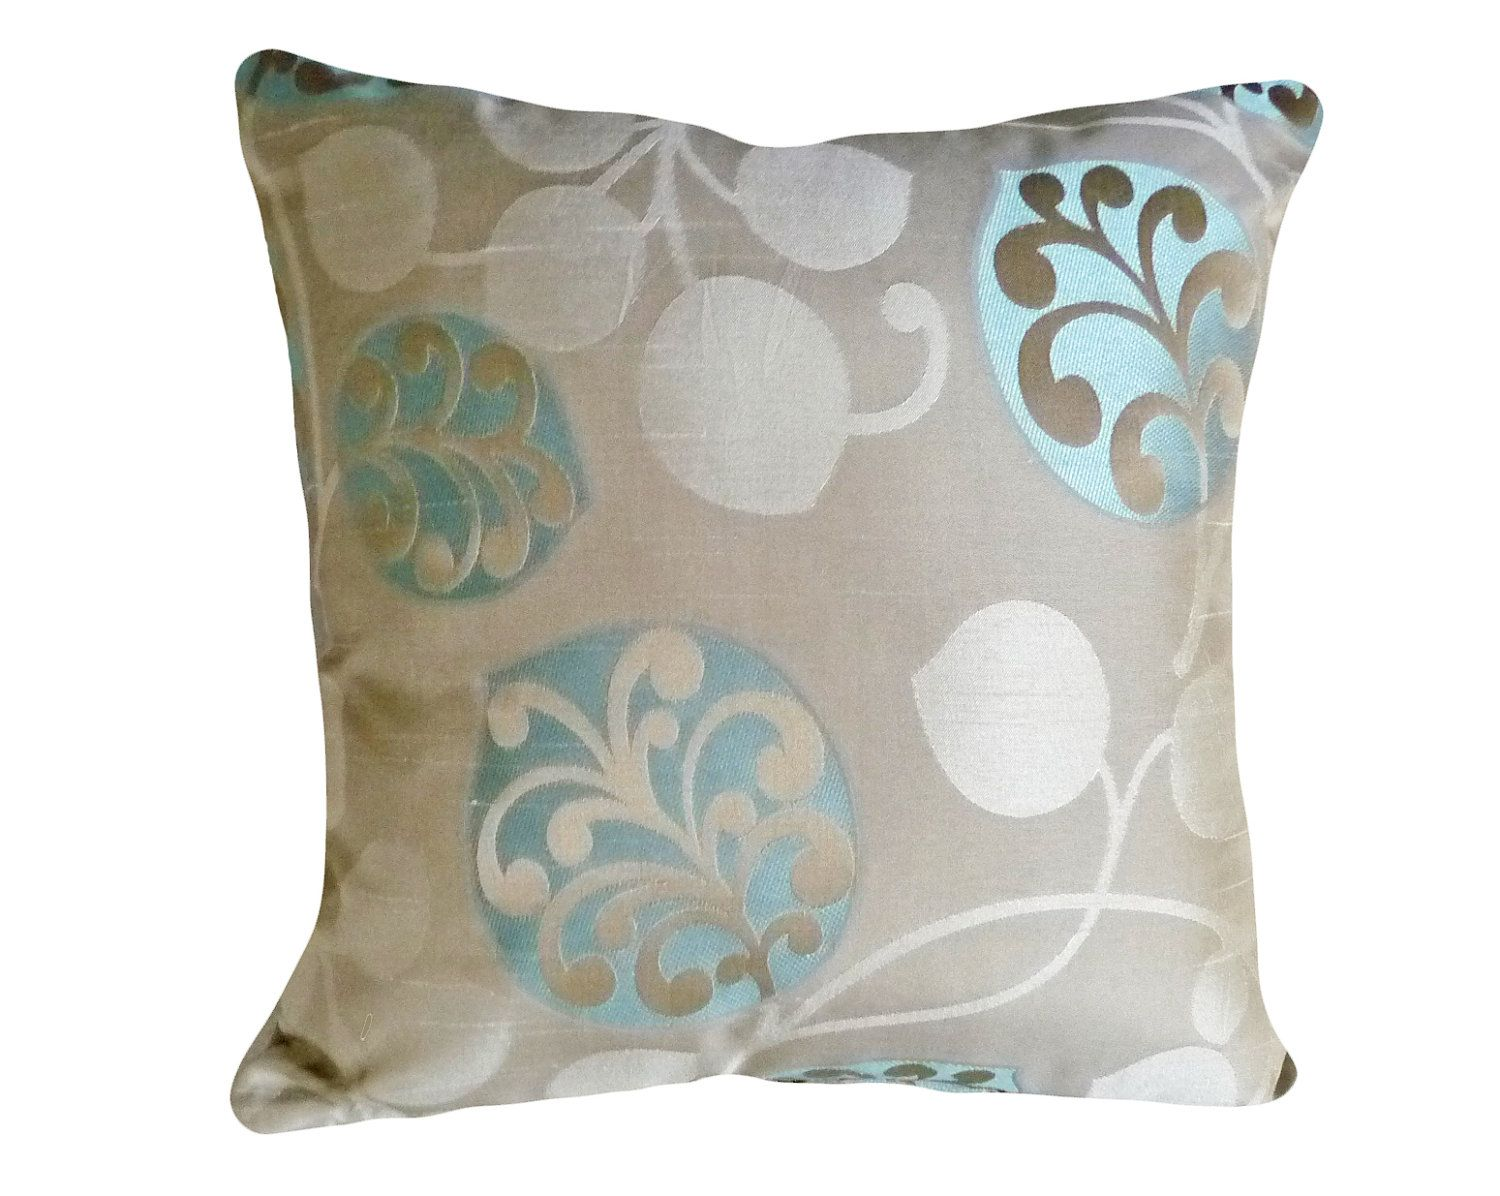 Chic Modern Pillows, Taupe Tan Turquoise Blue, 20 inch ...